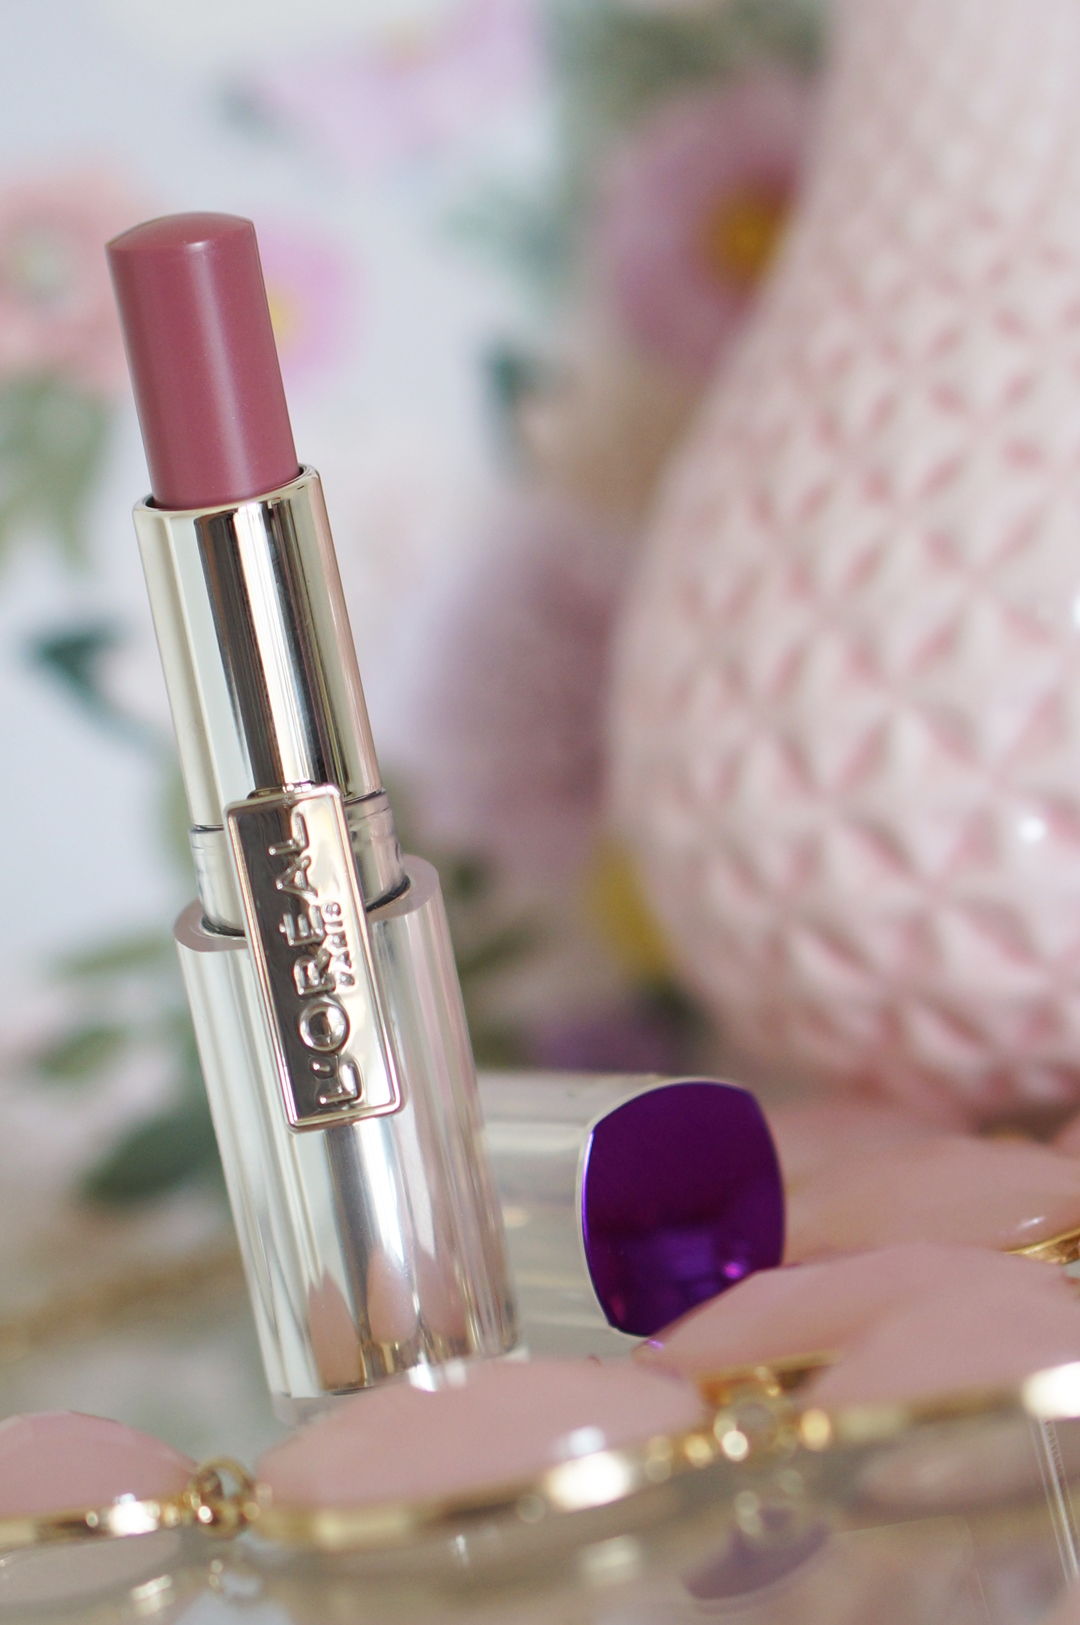 Lóreal-caresse-101-tempting-lilac-lipstick-review-swatches (4)